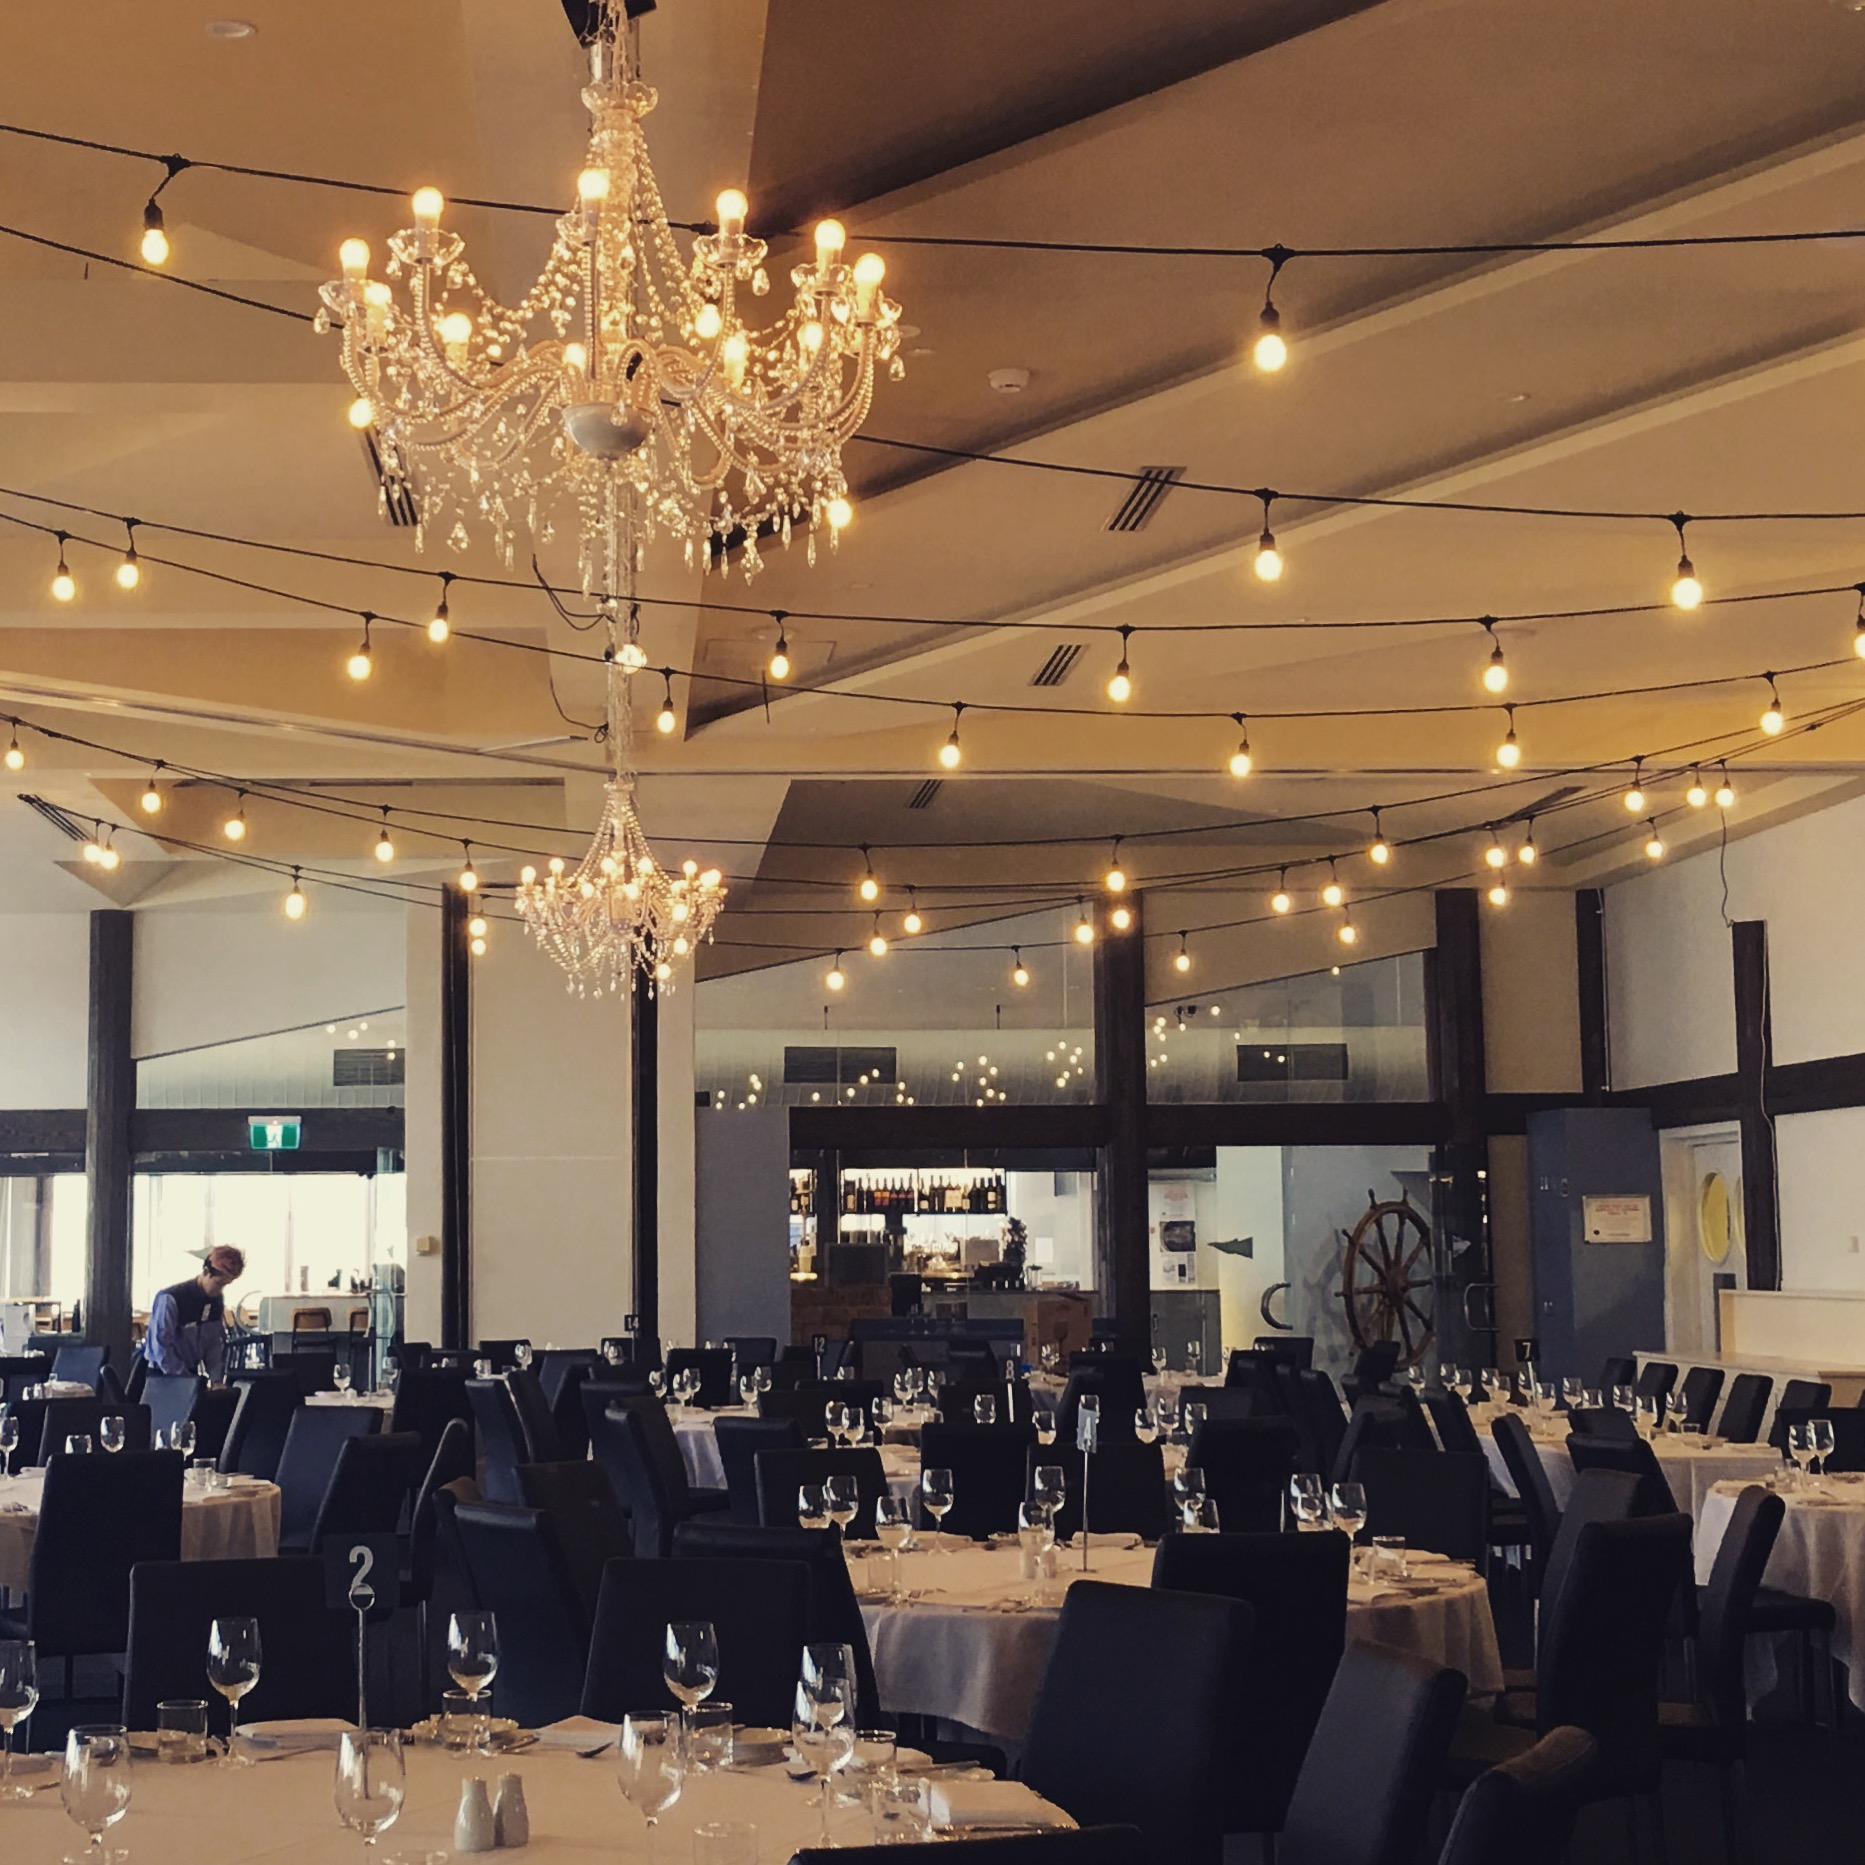 Festoon lights with Large Chandeliers.